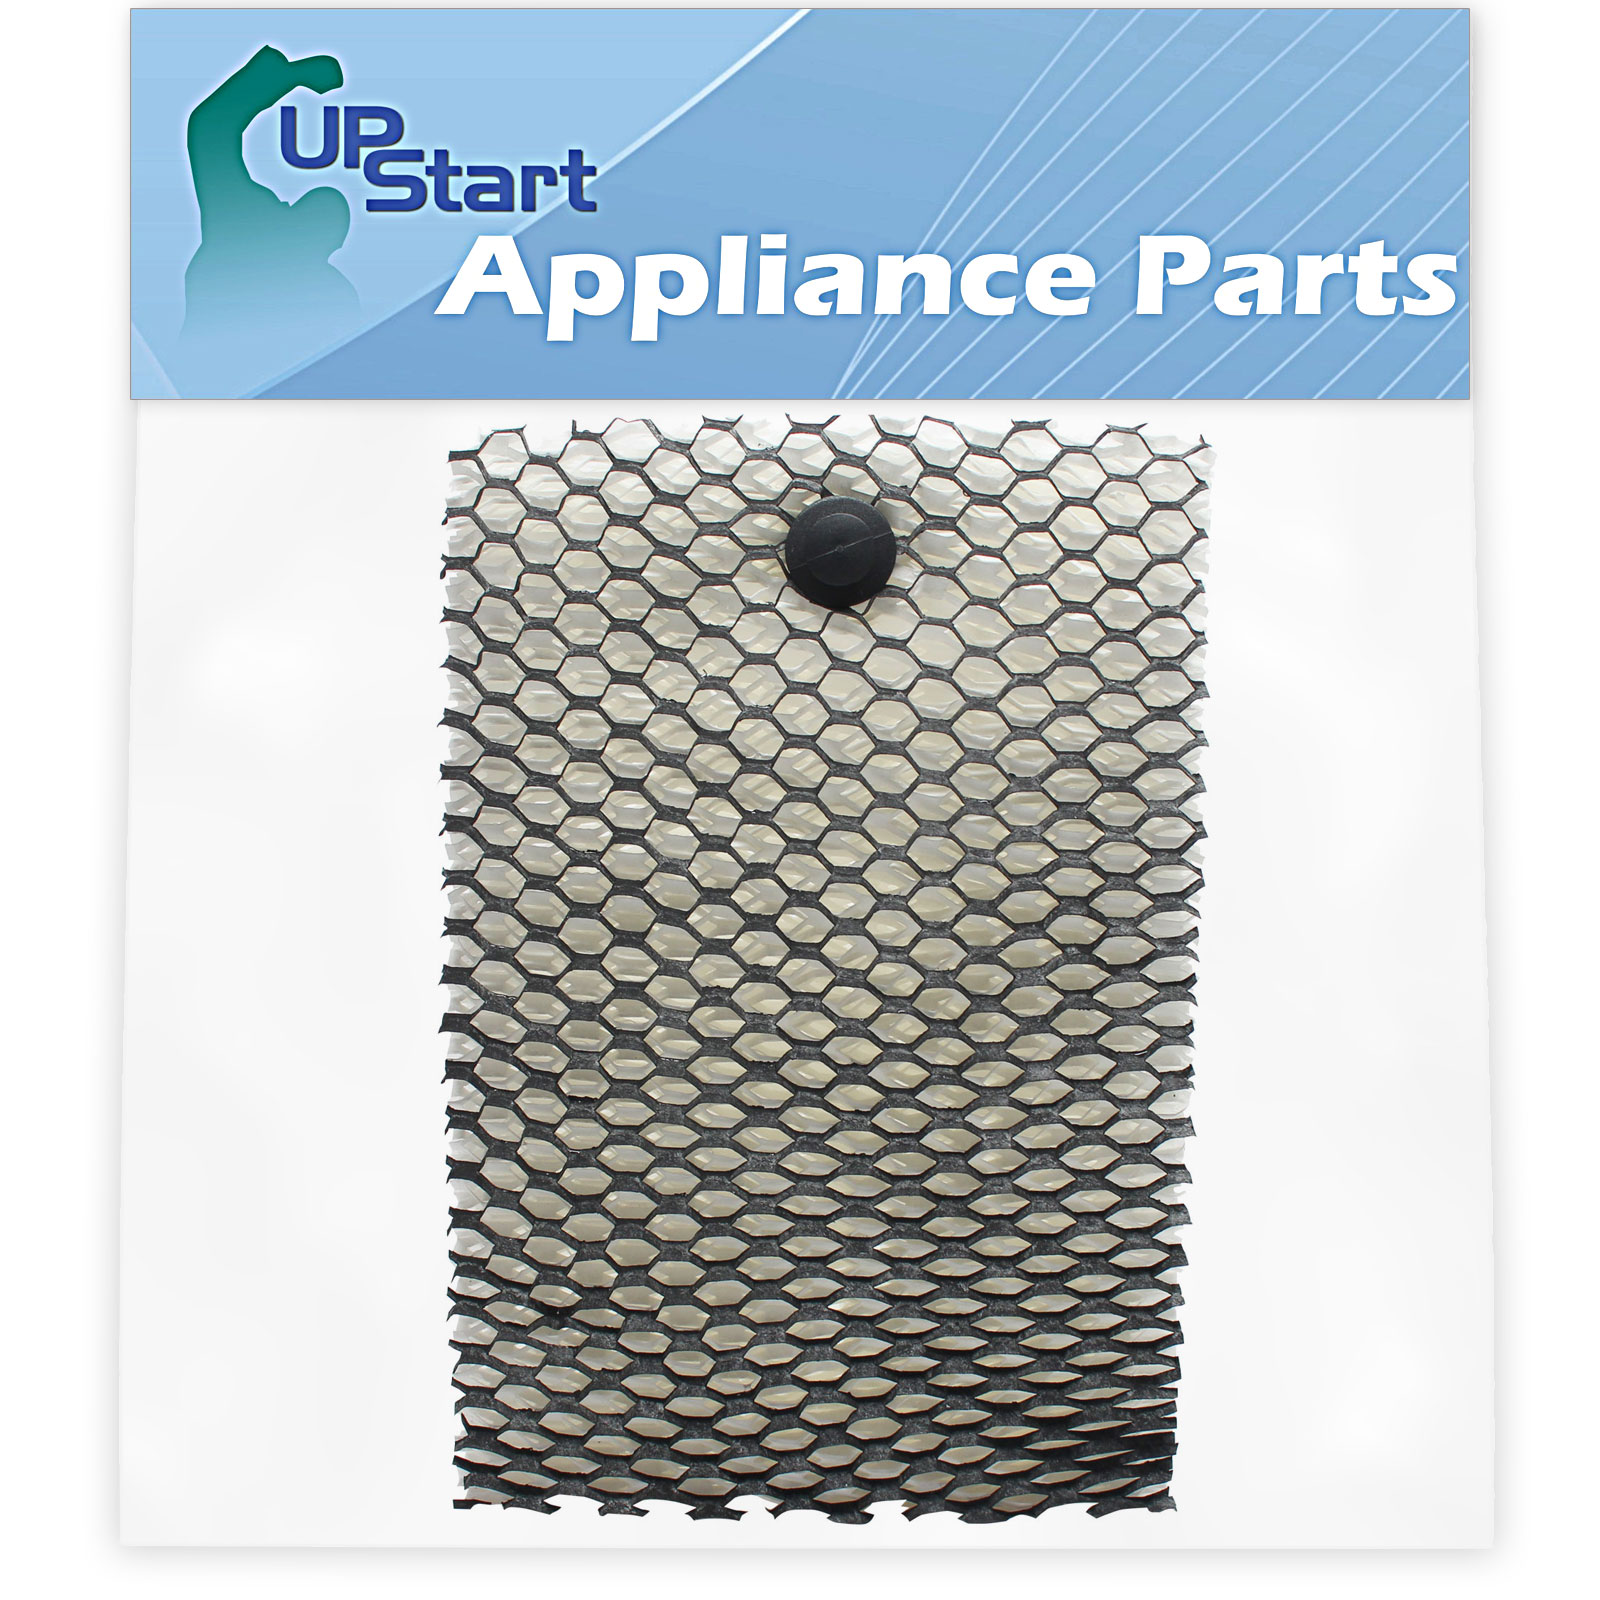 Replacement HWF100 Humidifier Filter for Holmes, Bionaire, Sunbeam - Compatible with Holmes HM630, Bionaire BCM646, Holmes HWF100, Sunbeam SCM630, Bionaire BCM740B, Sunbeam SCM7808, Bionaire BWF100 - image 4 de 4